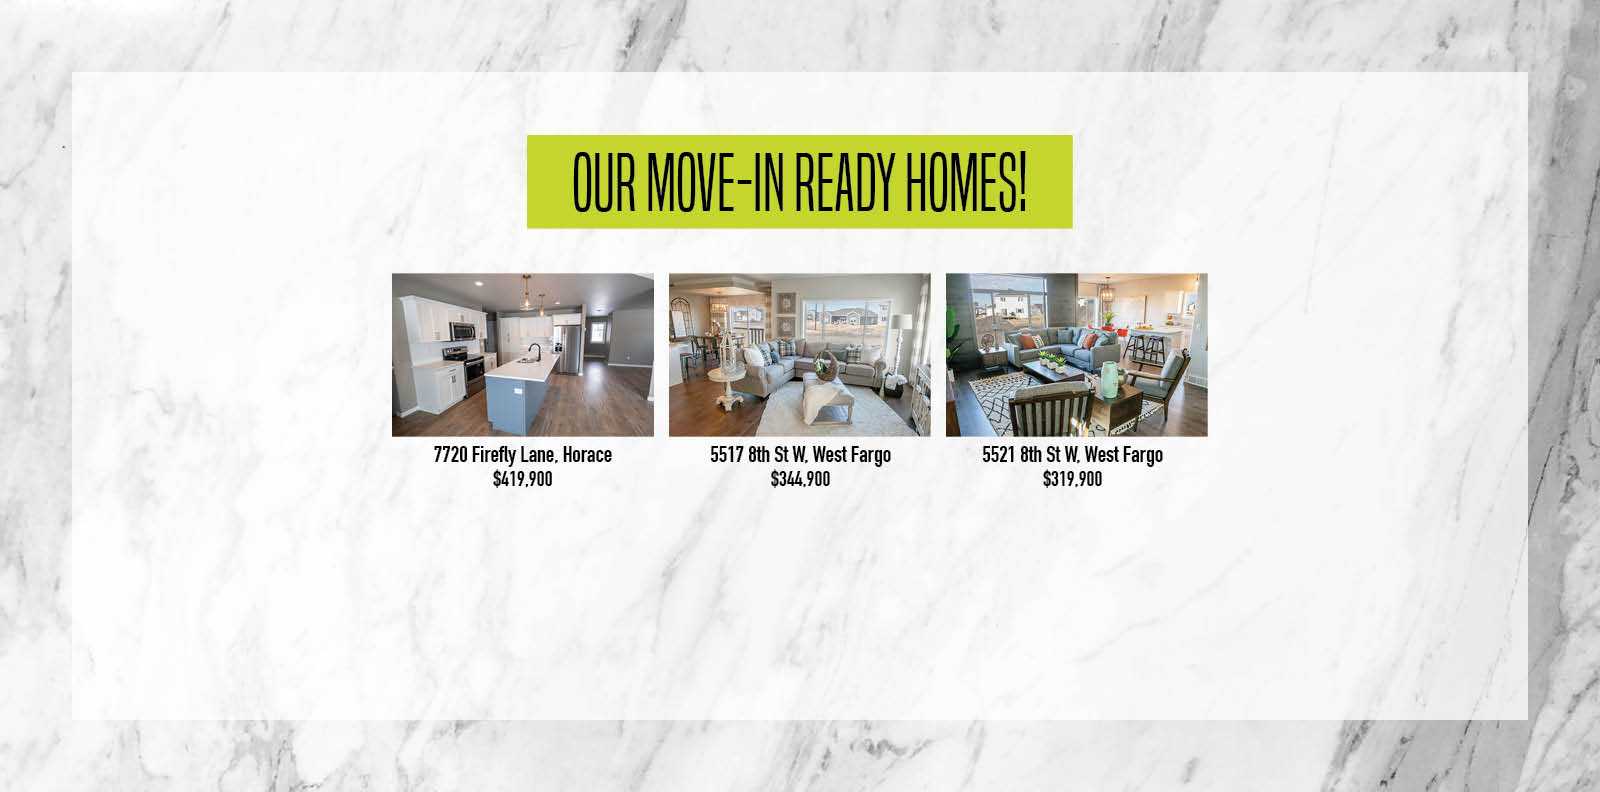 Our Move-In Ready Homes!